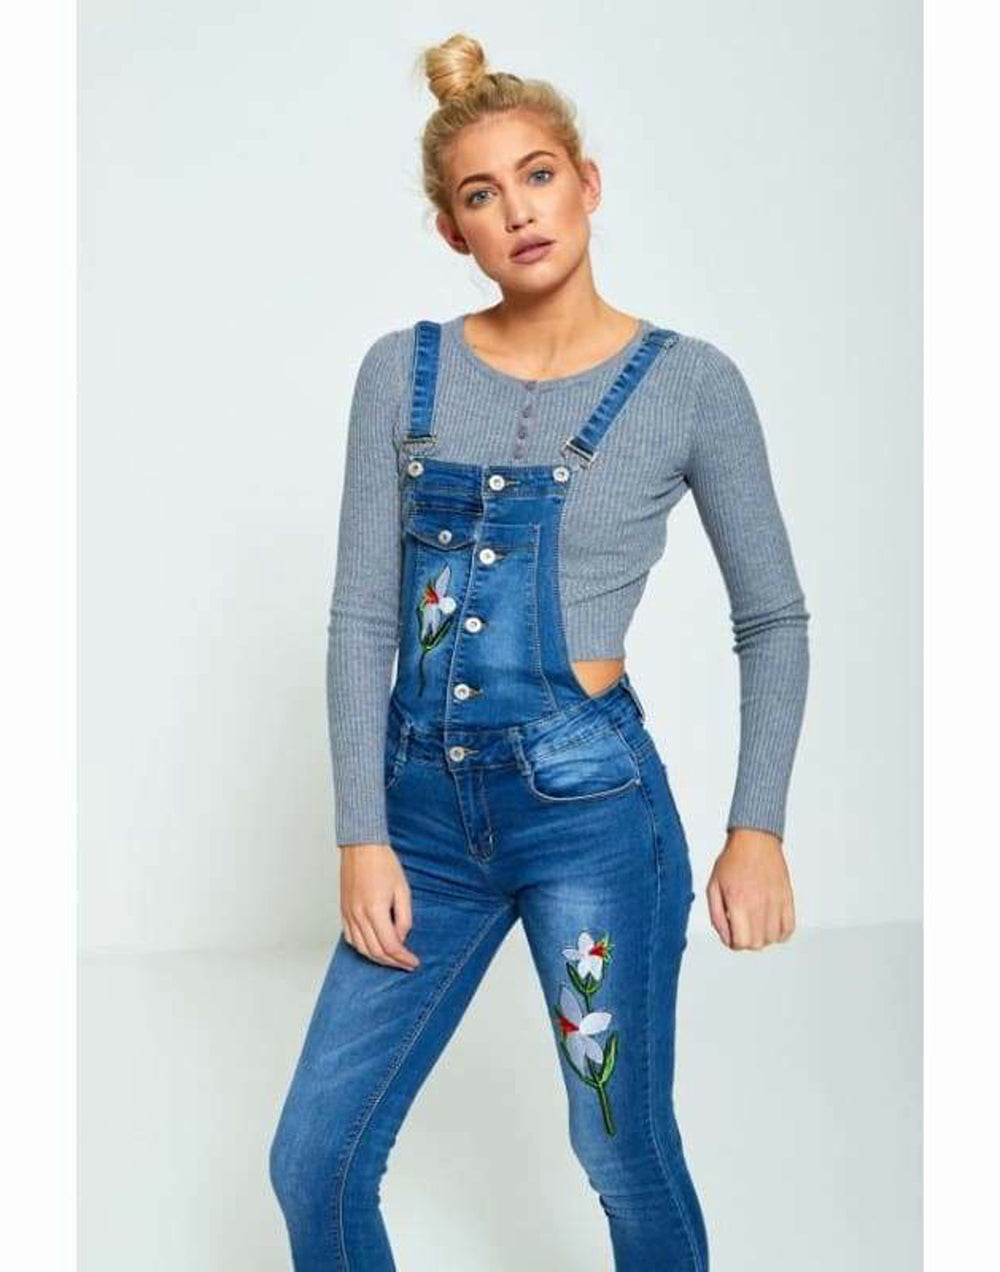 Floral Embroidered Button Up Dungarees - Jumpsuits & Playsuits 5165 blue dungarees by sawn by swan floral embroidered button up dungarees